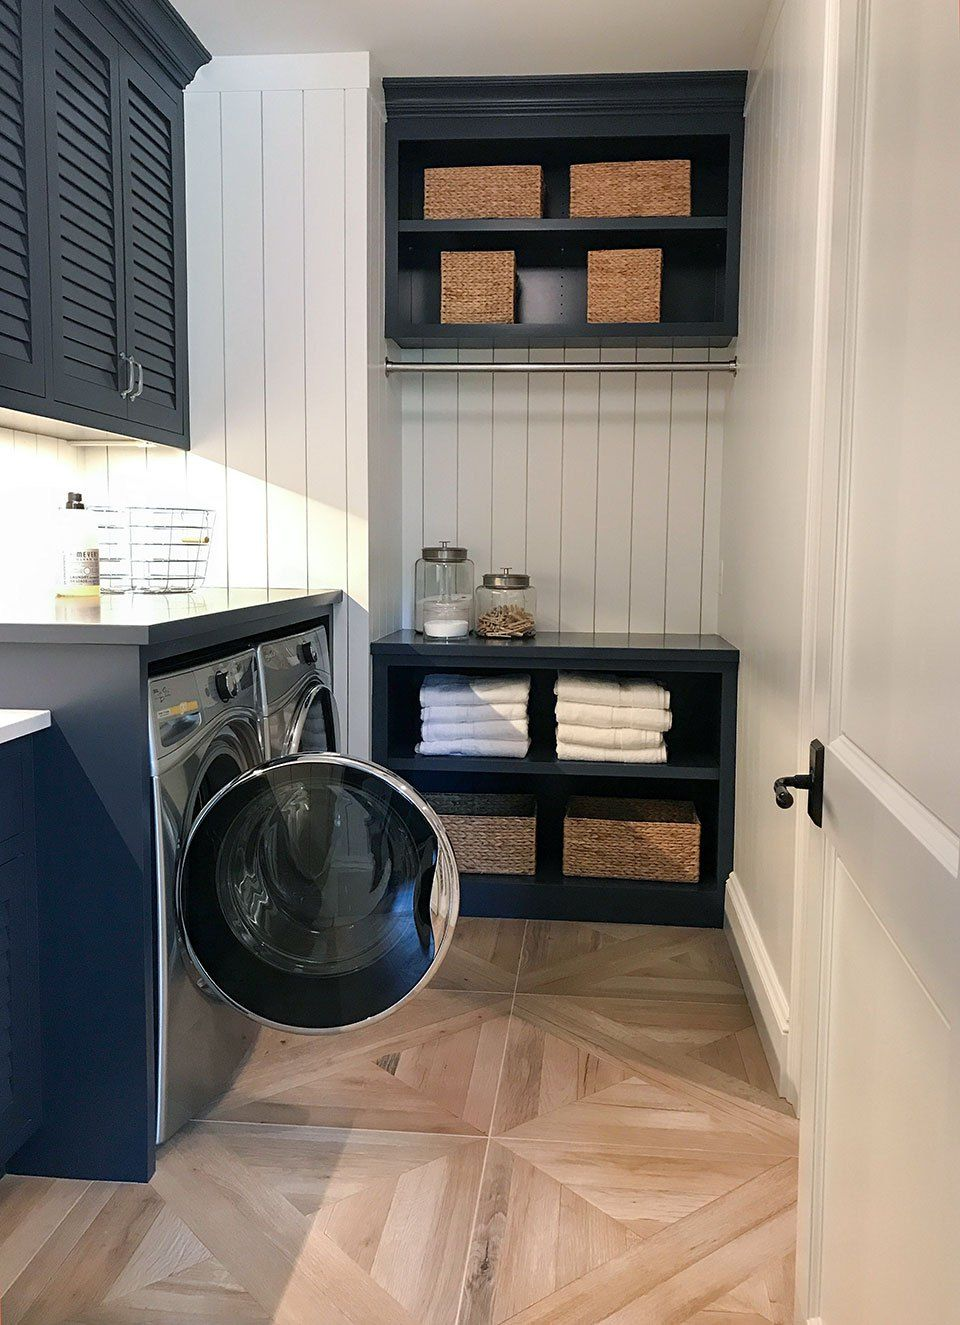 Second Floor Laundry Room With Light Natural Floors Navy Cabinets White Shiplap Walls